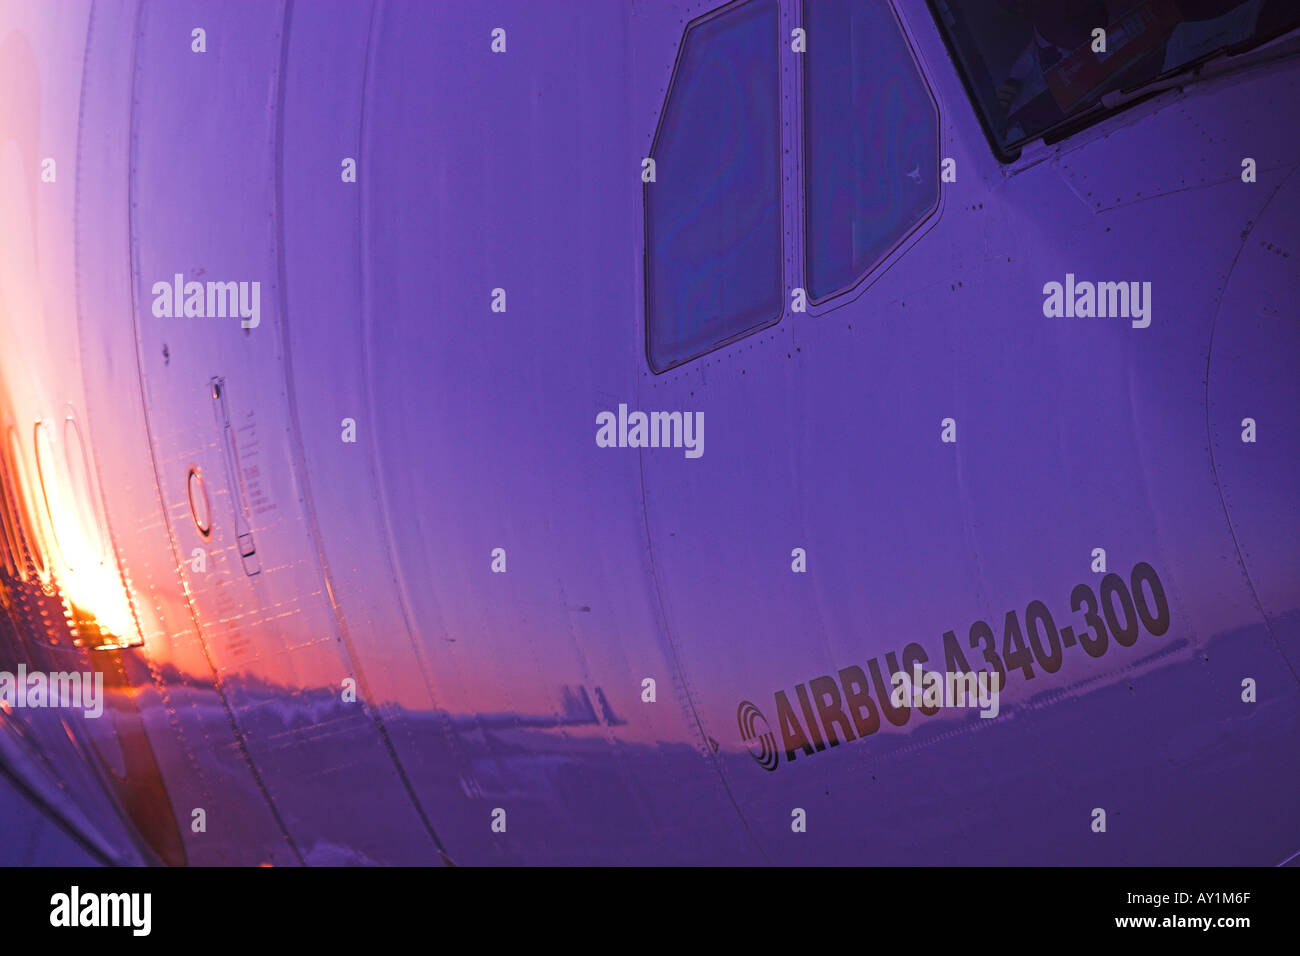 Airbus A340 airplane aeroplane civil aircraft jet passenger closeup close-up of front of aircraft in evening sunlight sunset - Stock Image